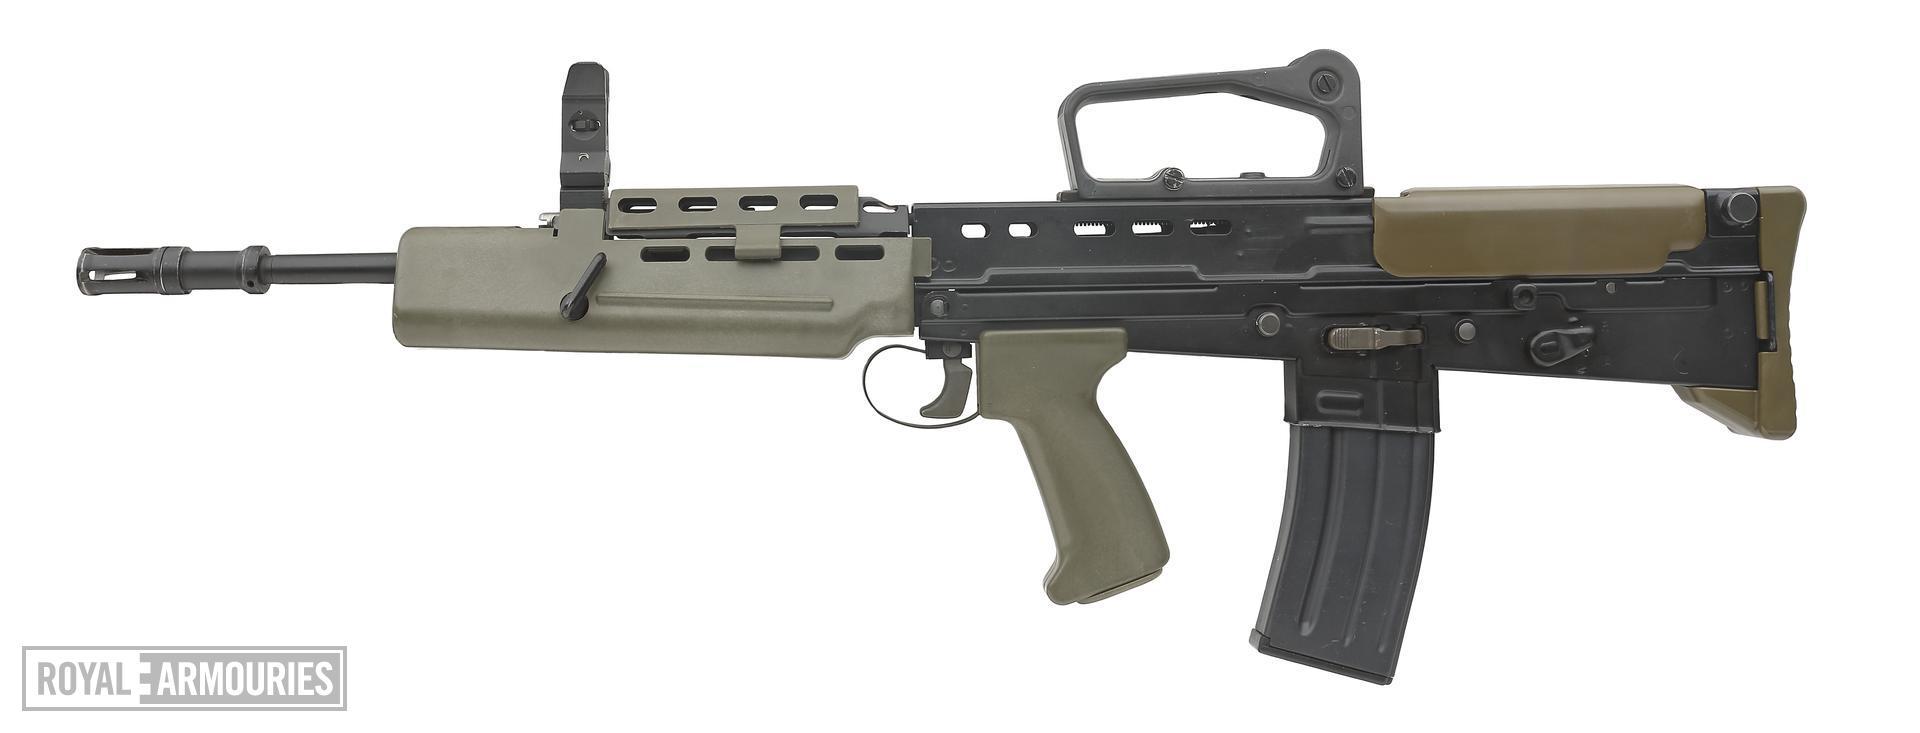 Centrefire automatic rifle - SA80 L85A1 Individual Weapon (IW)